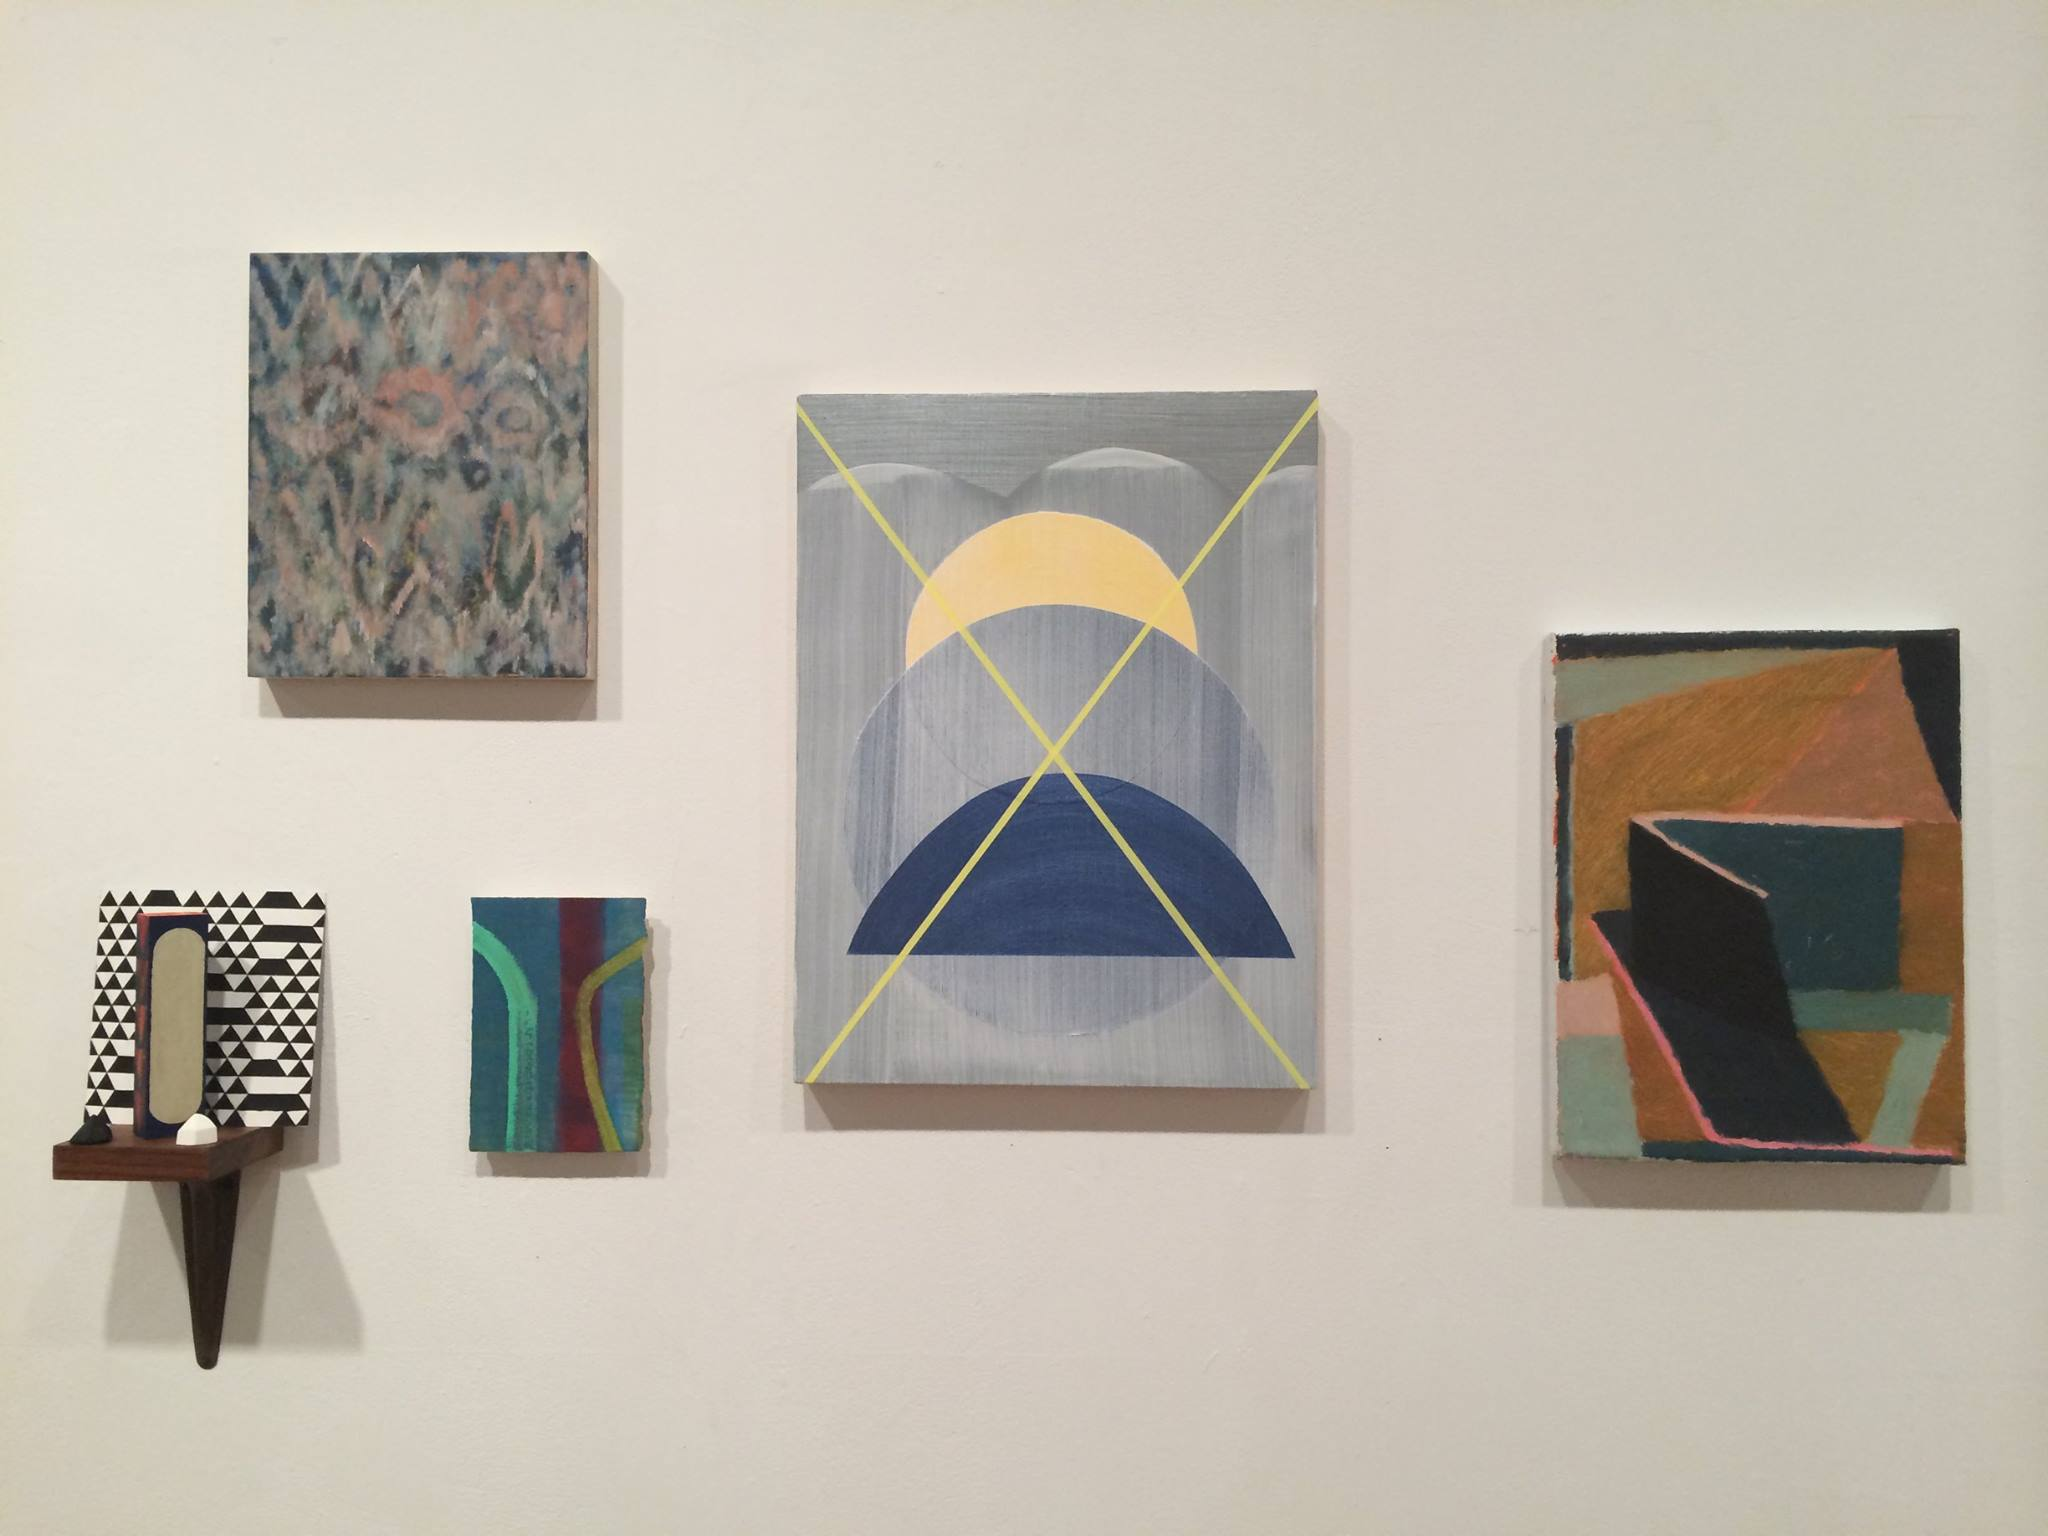 """""""New Work City"""", curated by Julie Torres at Momenta Art Jan 5th - Jan 11th. """"Lucid"""" in the center with yellow X. Photo by Julie Torres."""